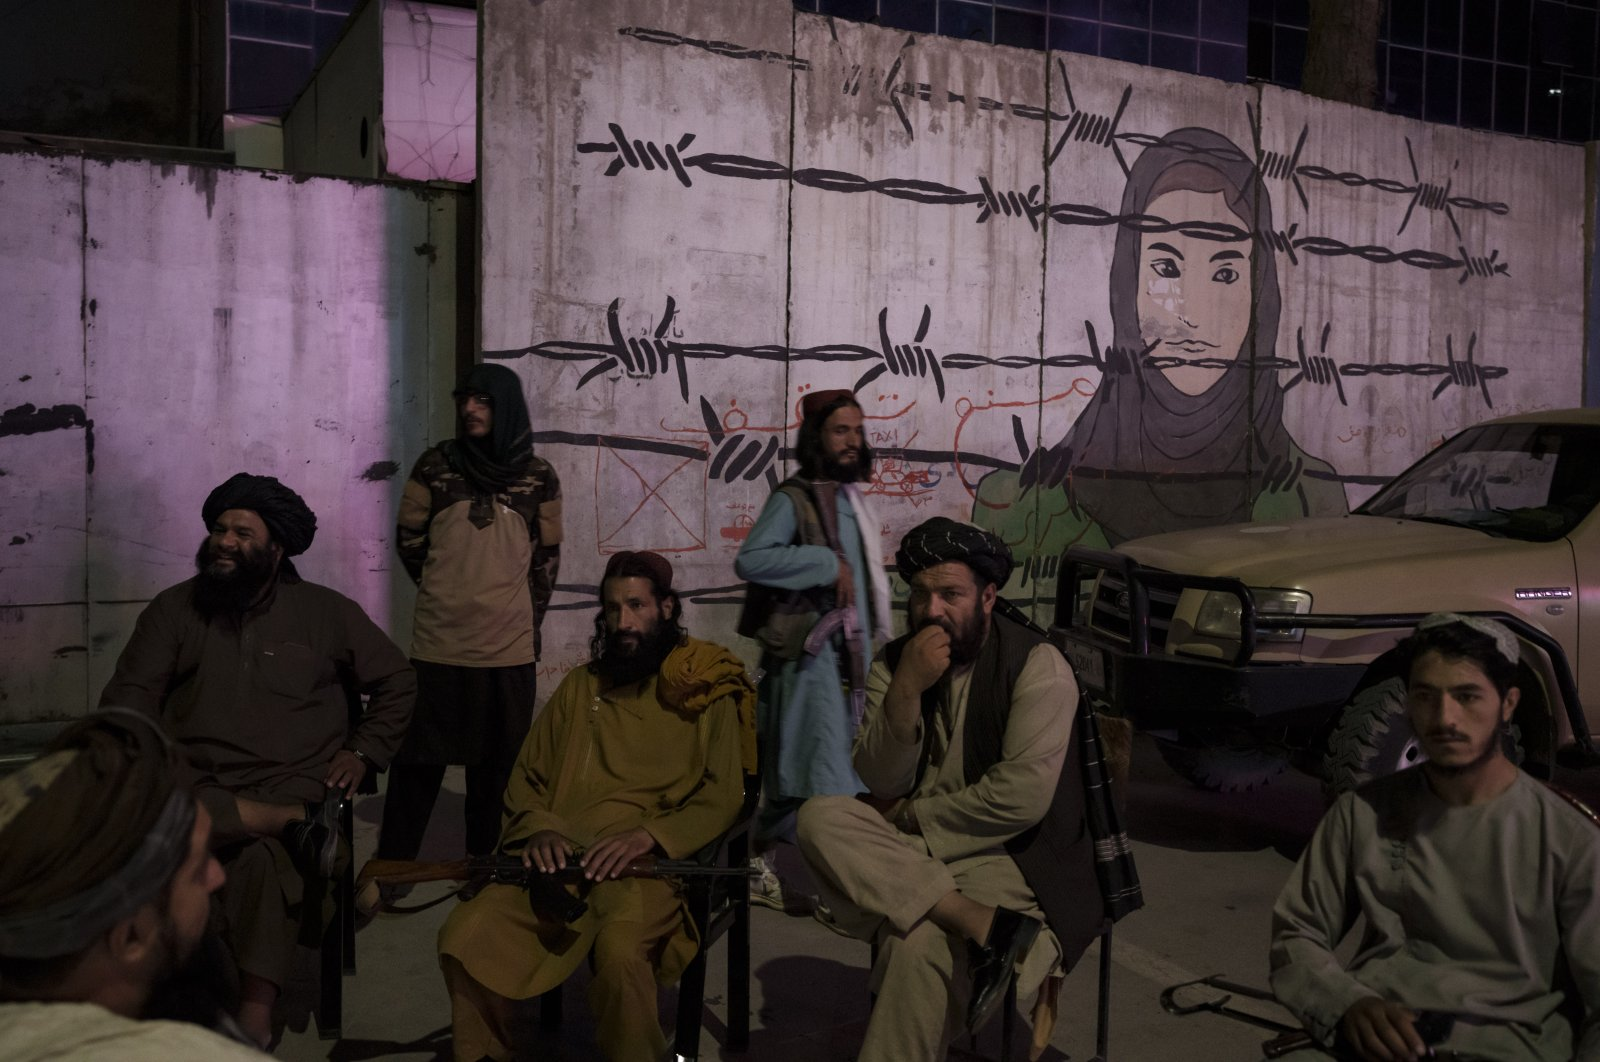 Taliban members sit in front of a mural depicting a woman behind barbed wire in Kabul, Afghanistan, Sept. 21, 2021. (AP Photo)